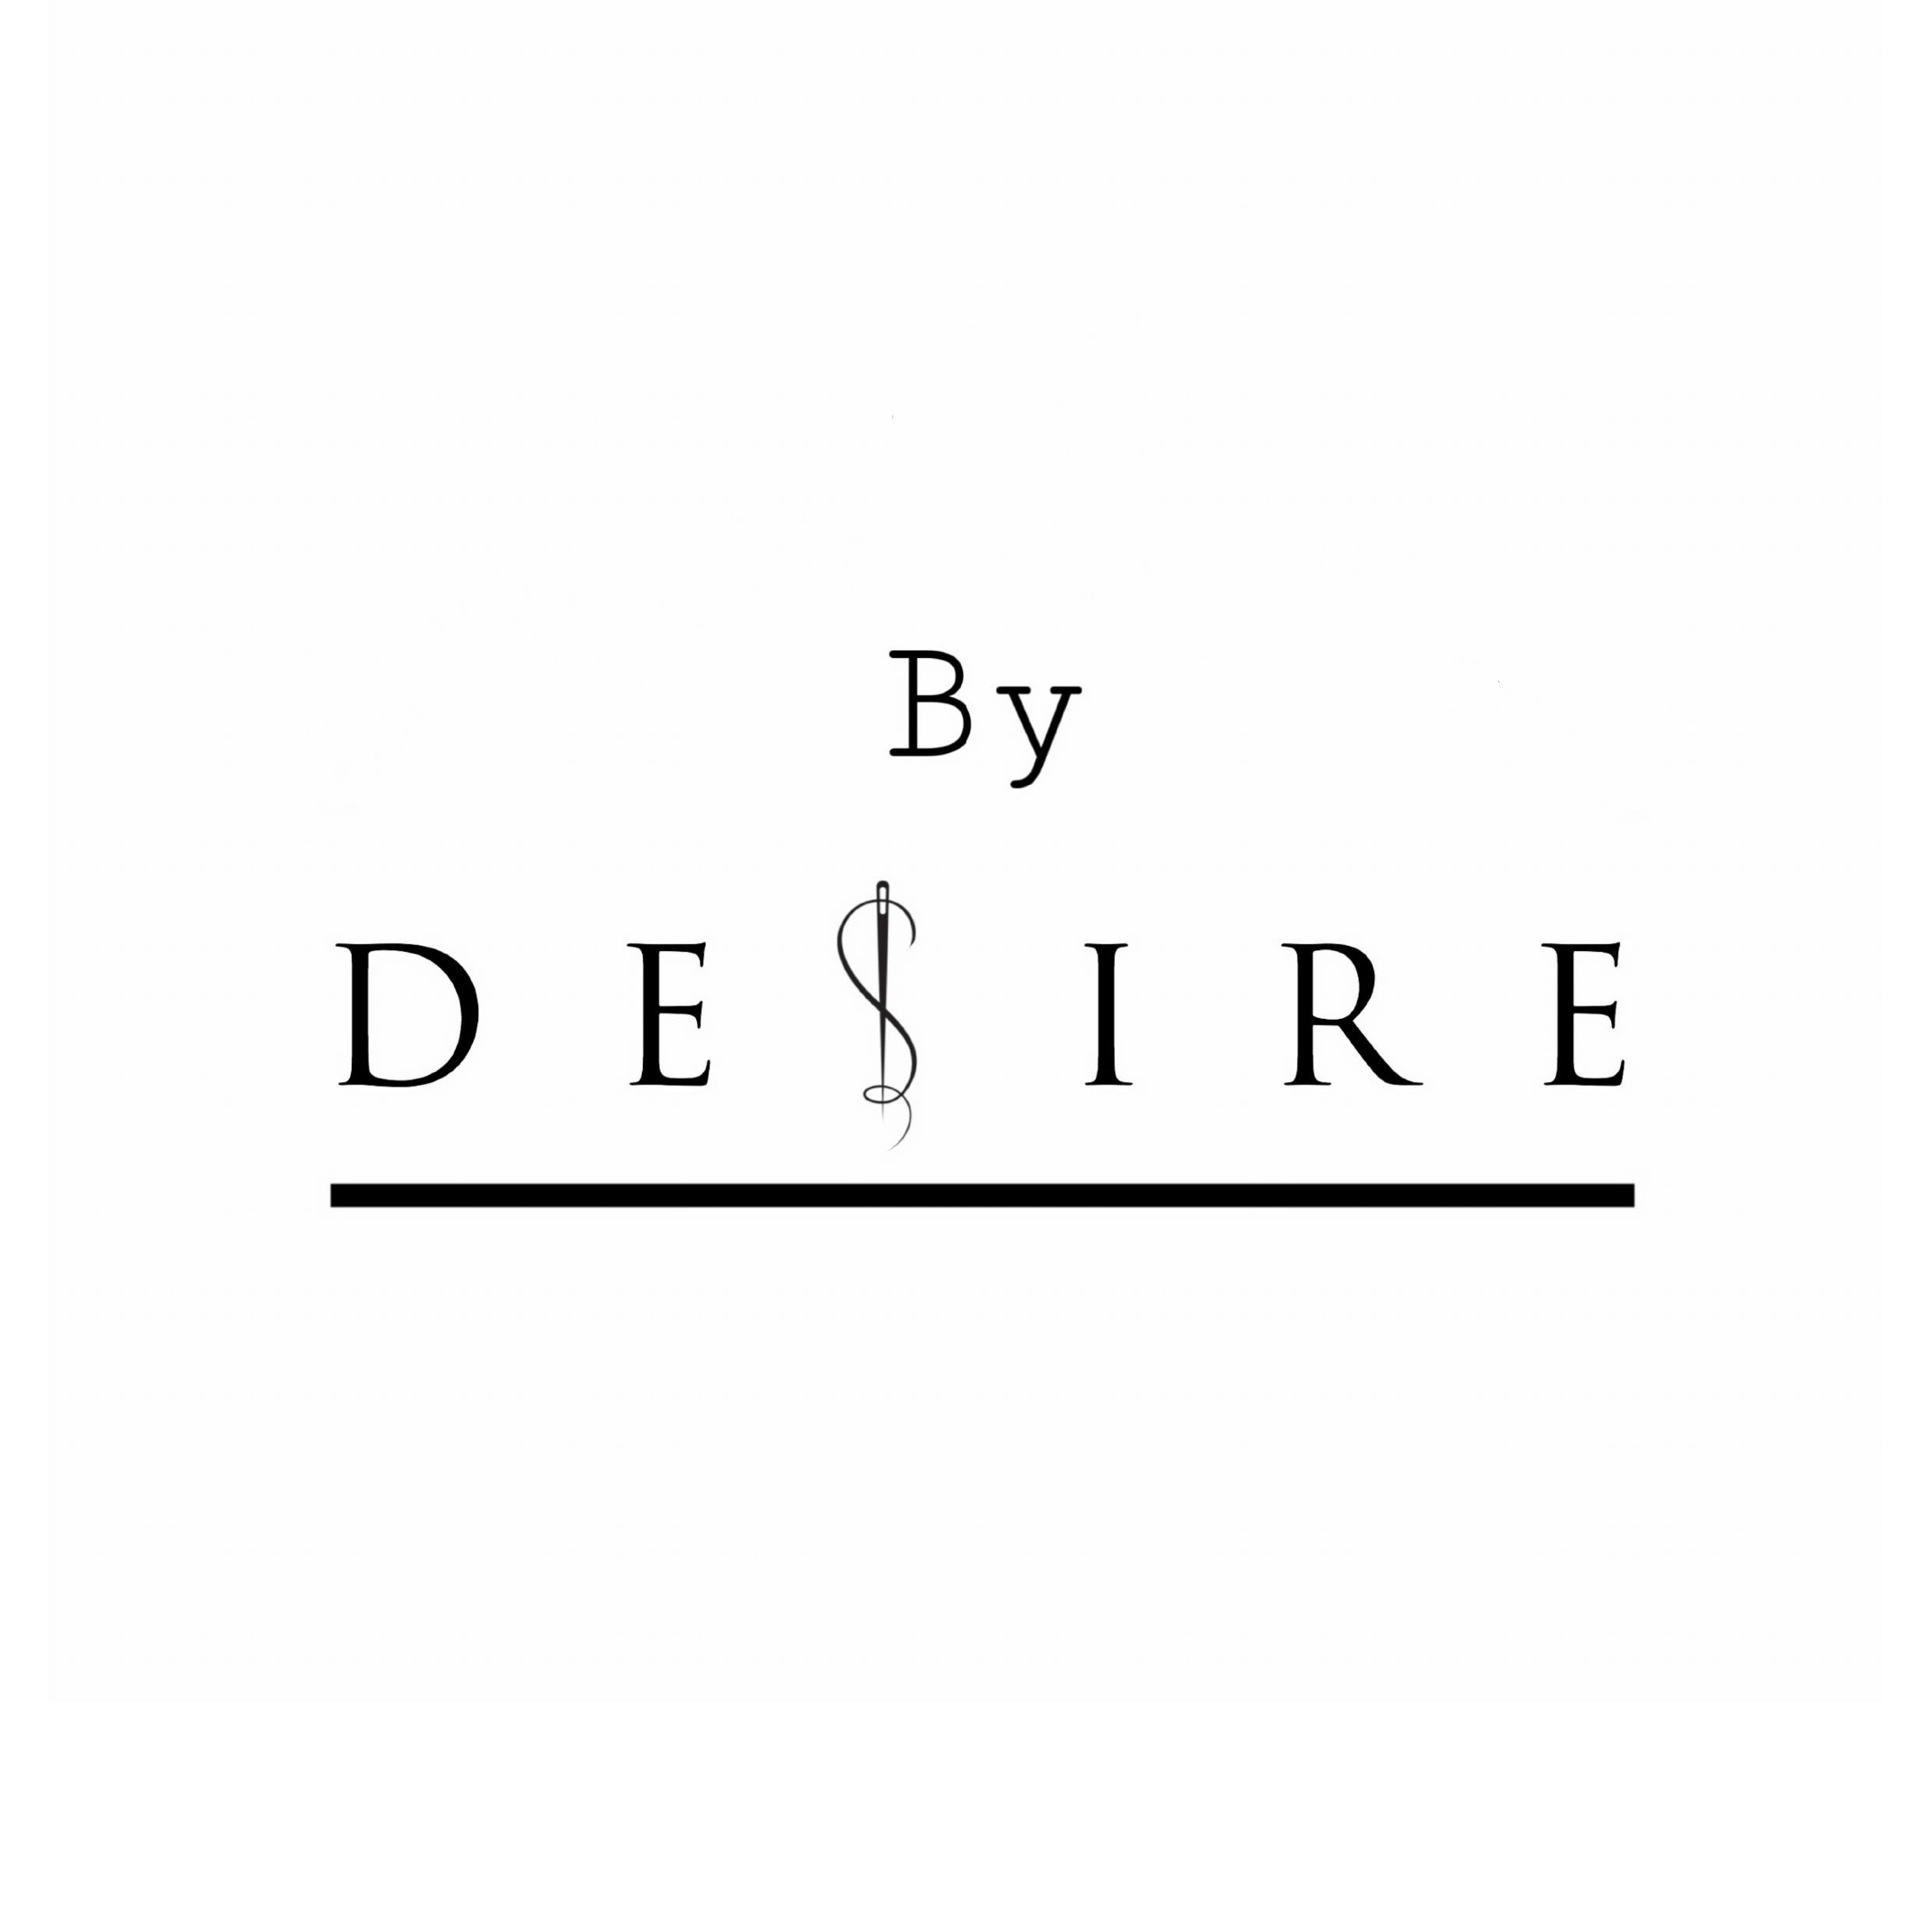 By desire